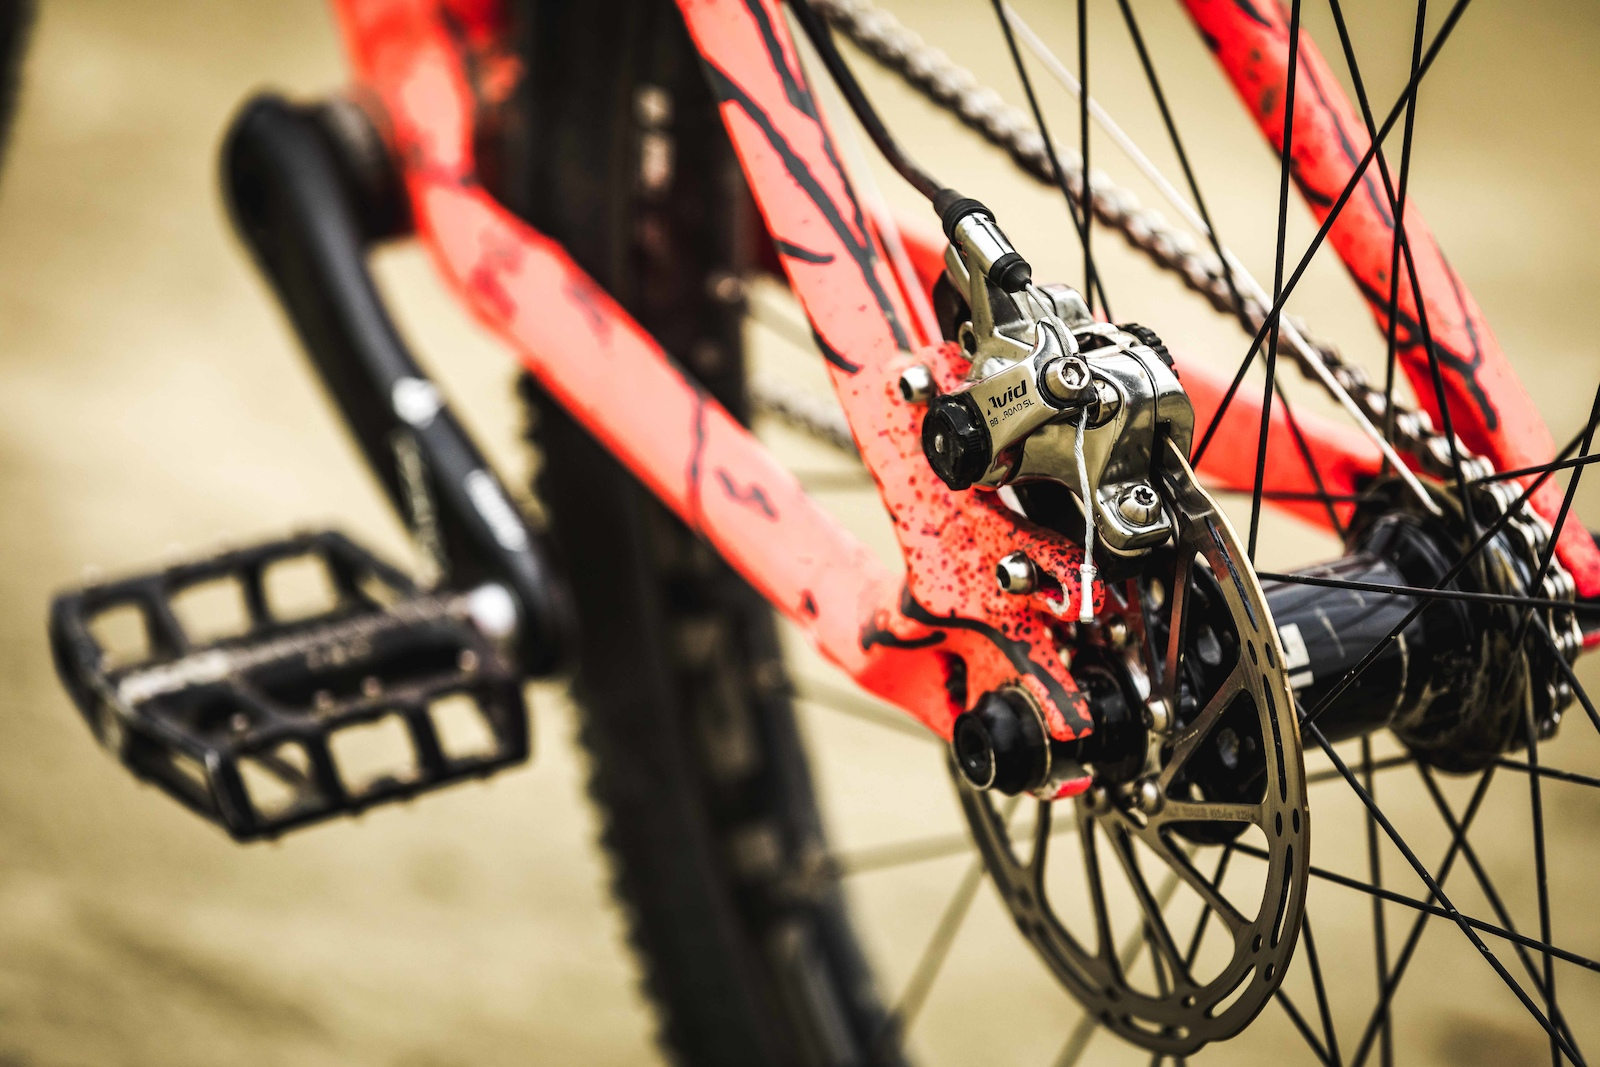 The Avid BB7 road brake offers the stopping power.